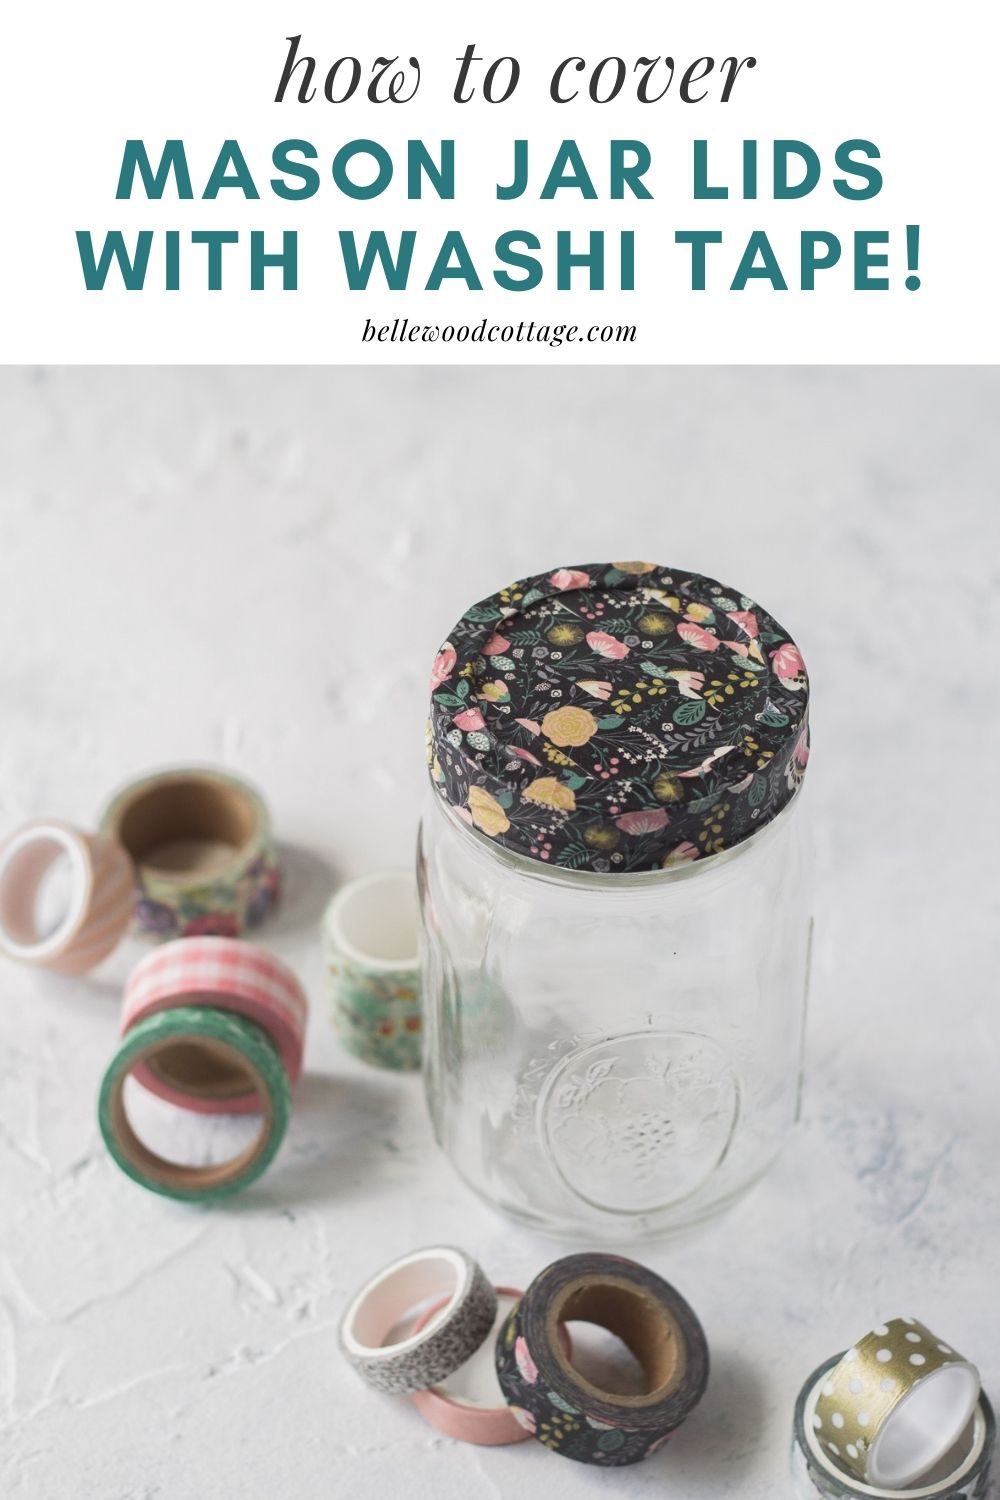 A mason jar with the lid covered in washi tape surrounded by more spools of washi tape.